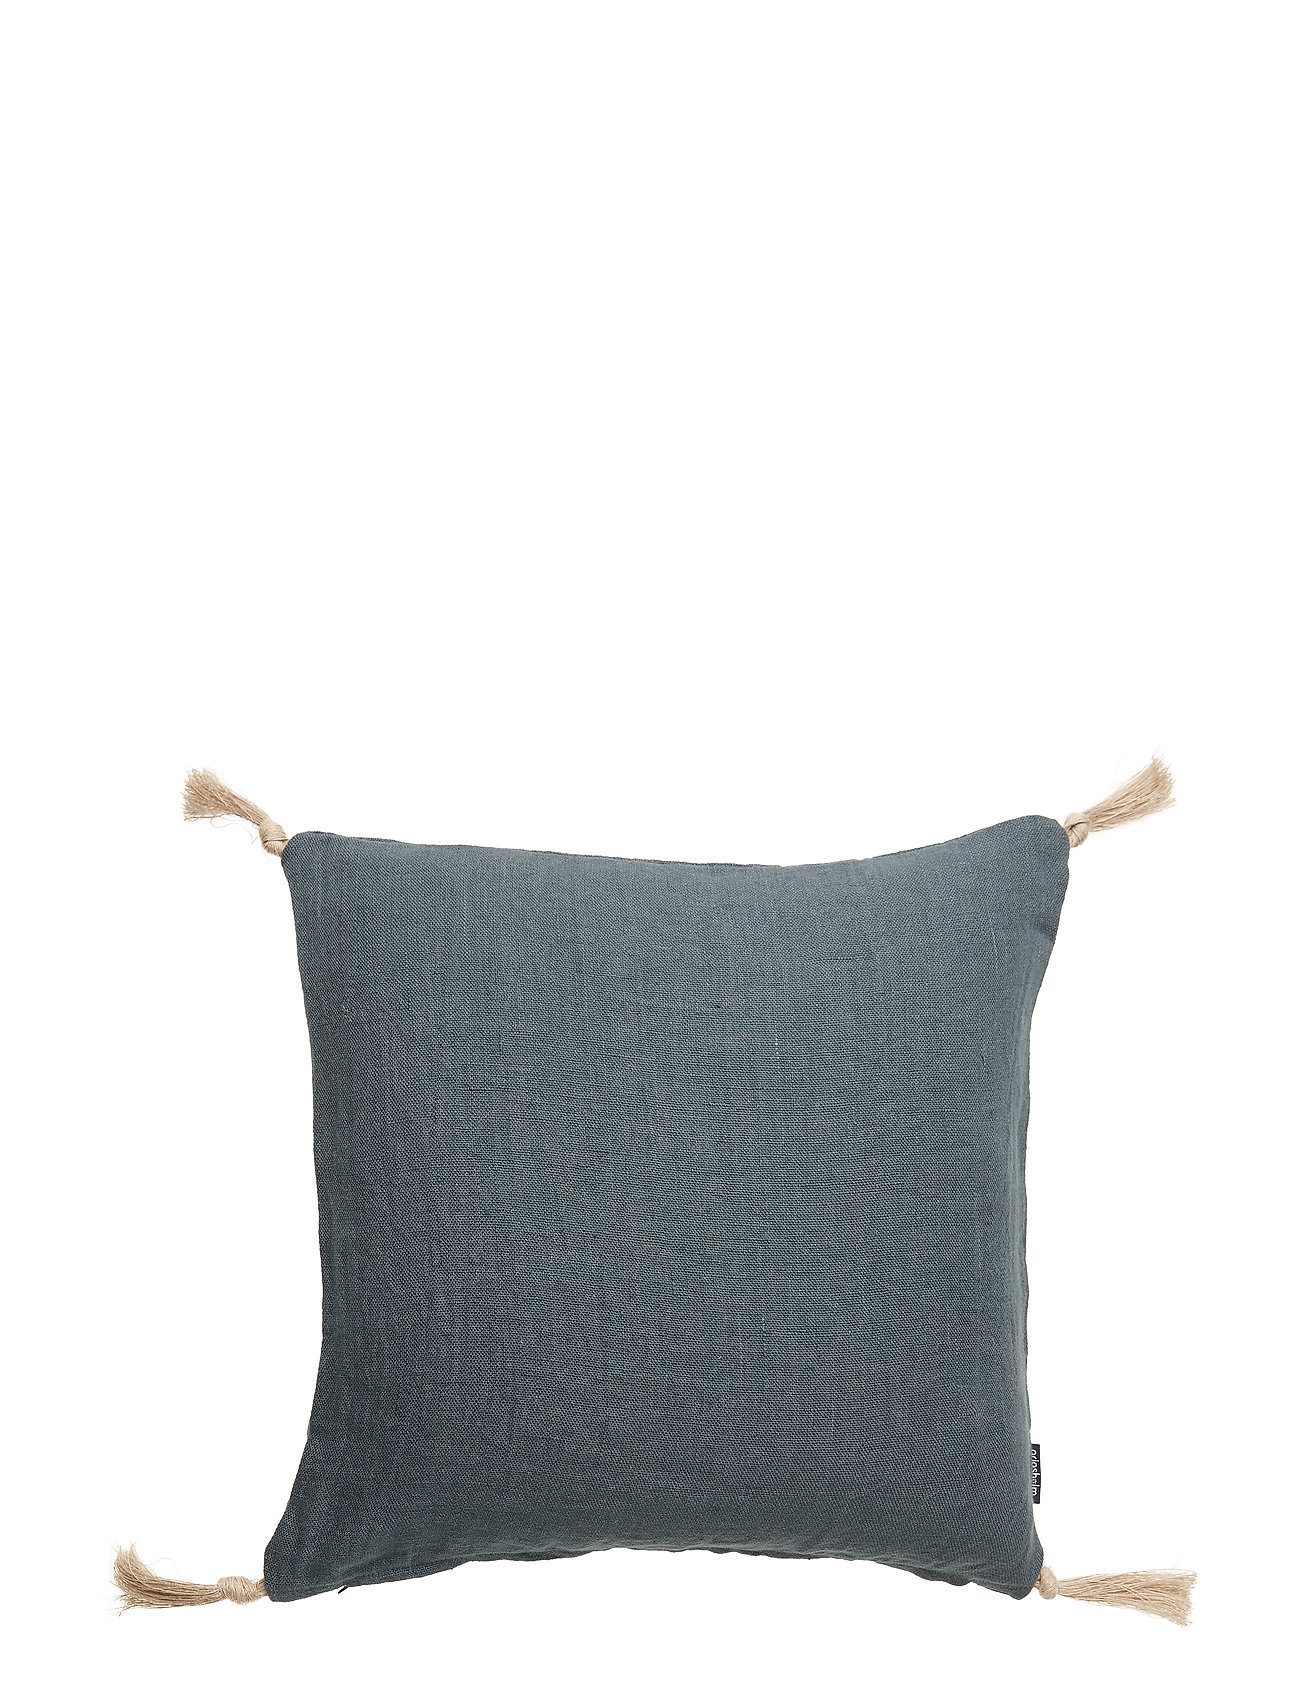 Covermisty Cushion Cushion PetrolGripsholm Covermisty PetrolGripsholm Cushion Covermisty iuTlwOPXkZ